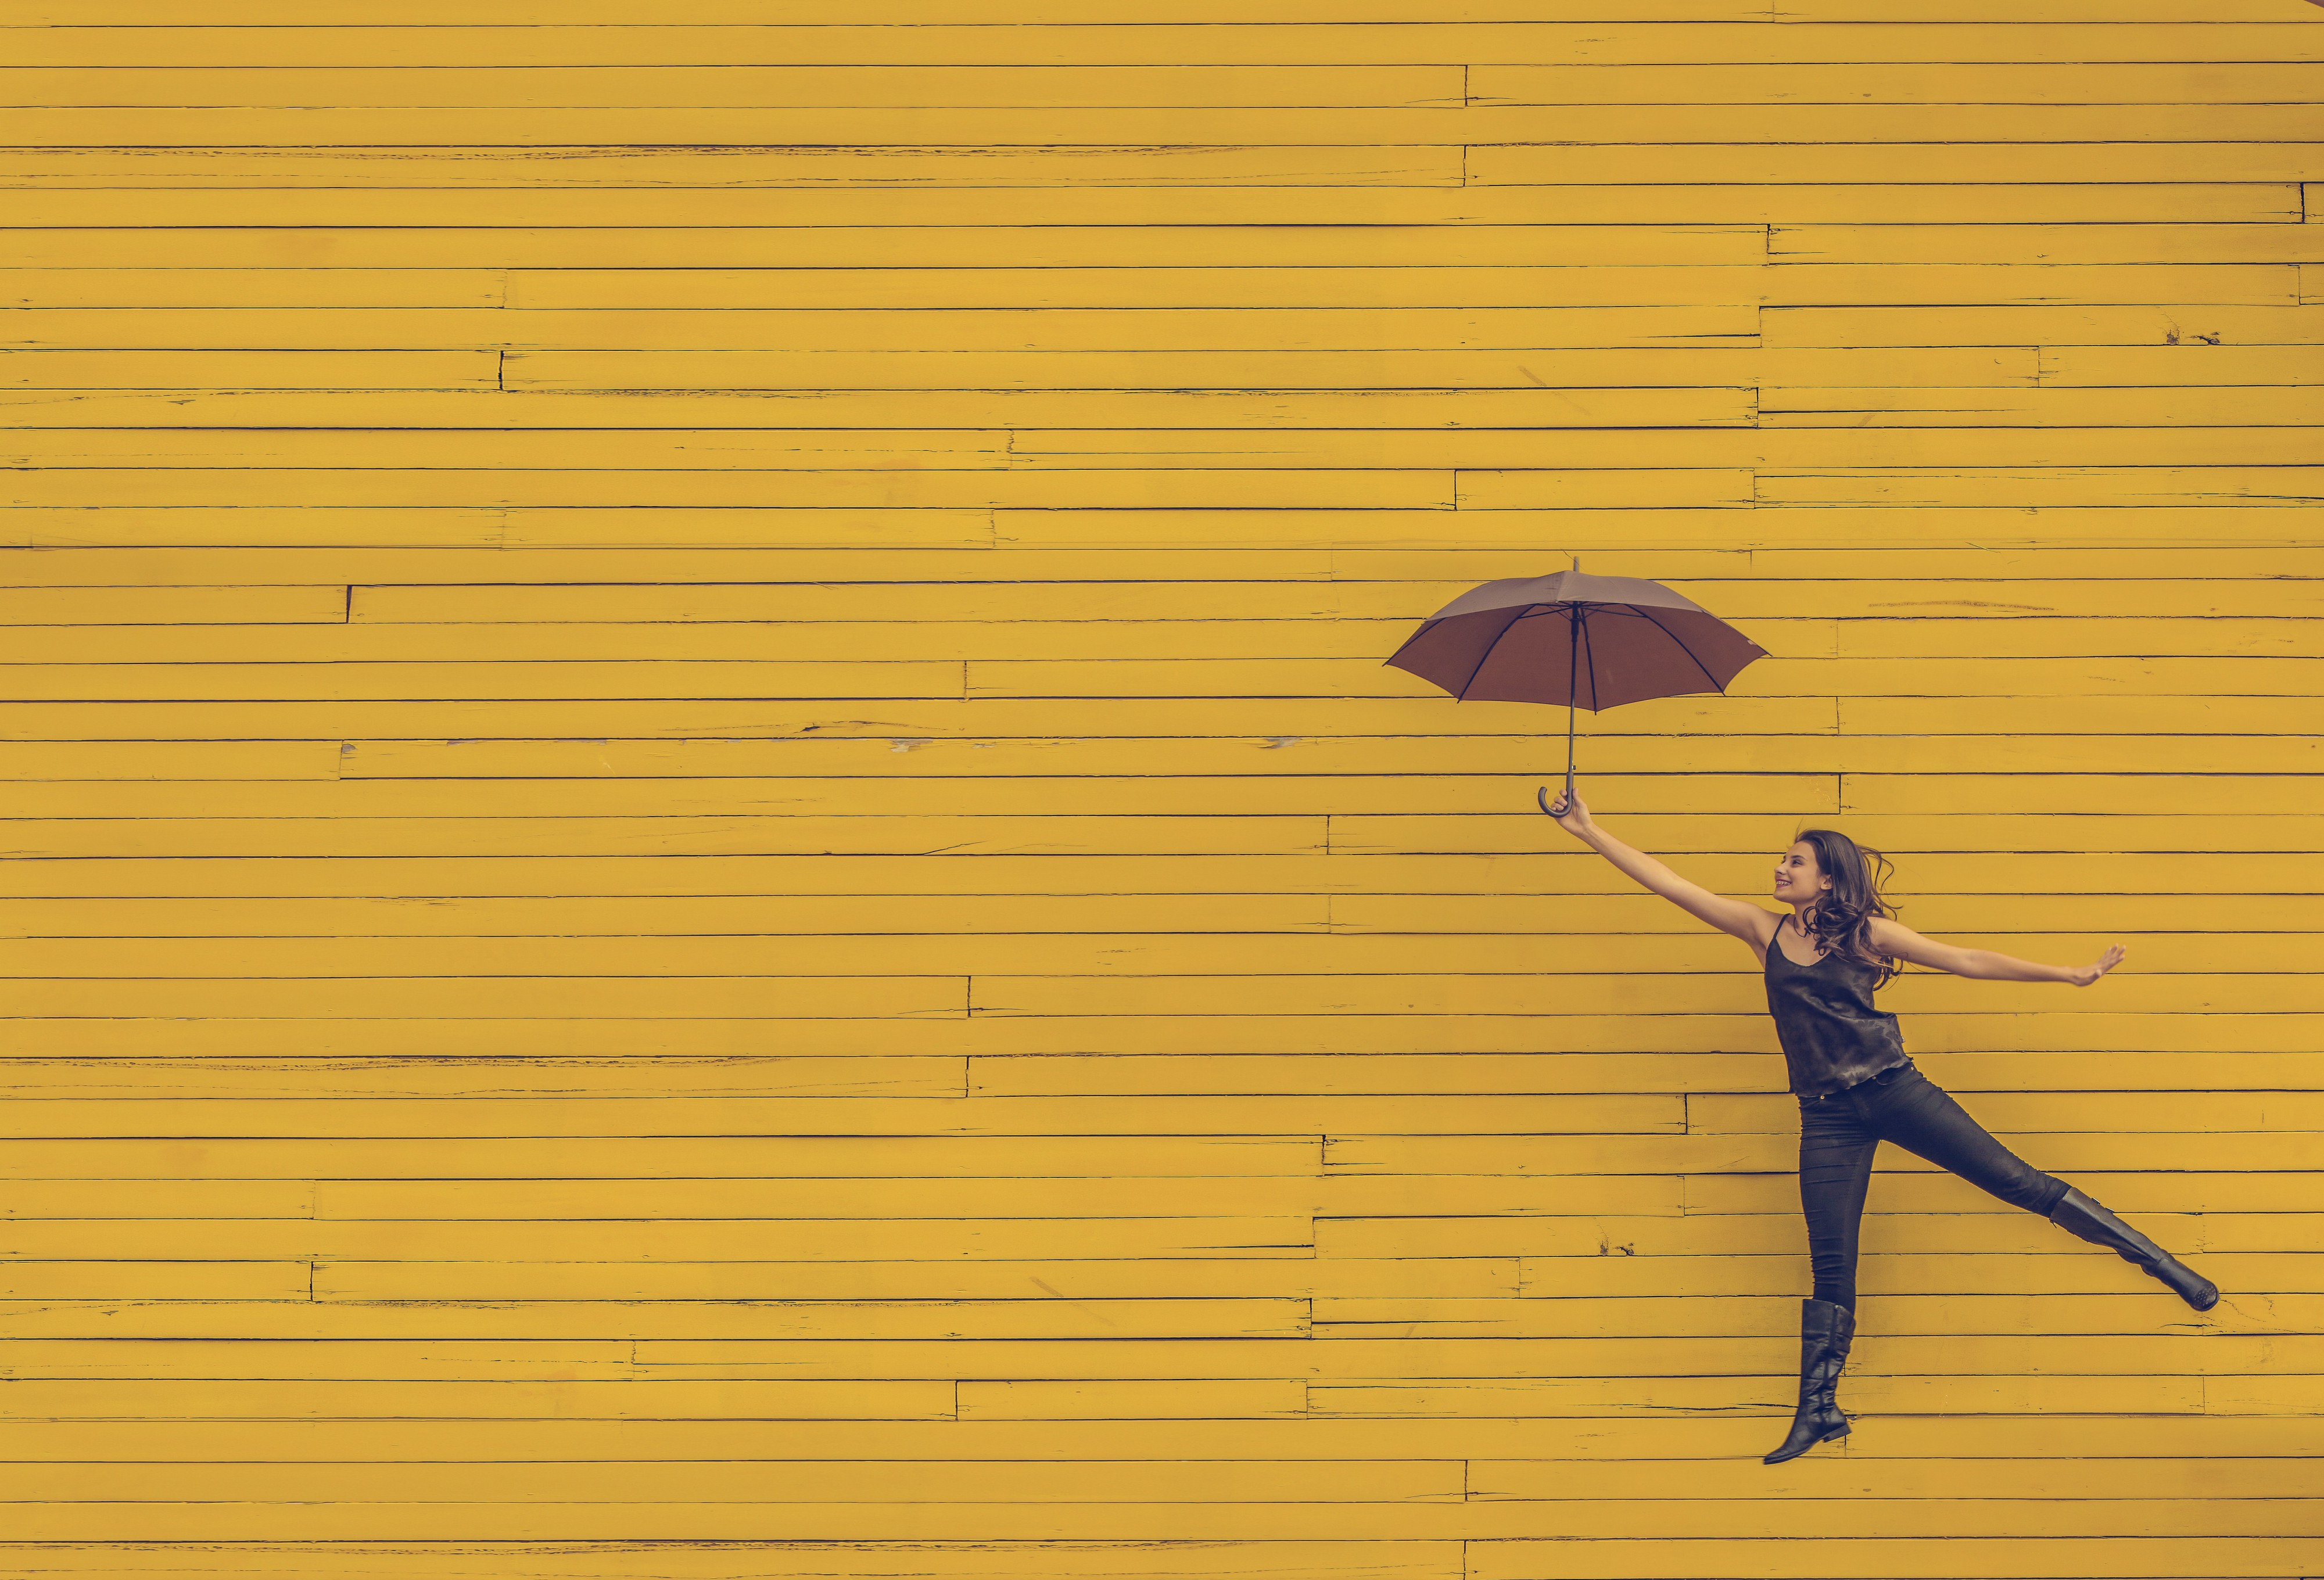 Woman suspended with umbrella against yellow wall. Trust, self-management, holacracy, sociocracy, teal organizations